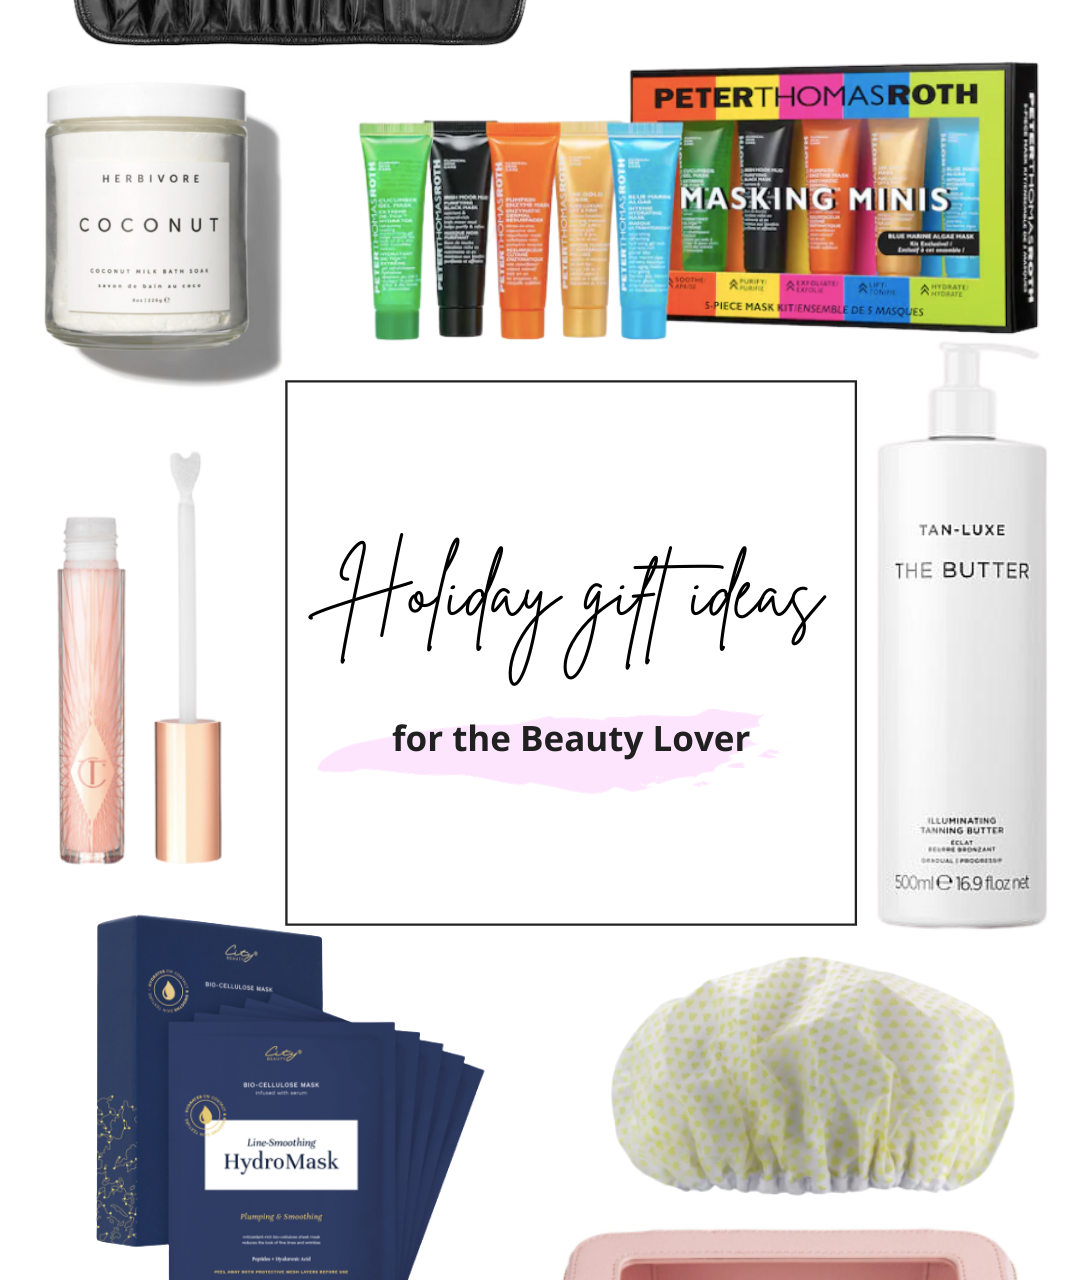 THE BEST HOLIDAY GIFT IDEAS FOR THE BEAUTY LOVER